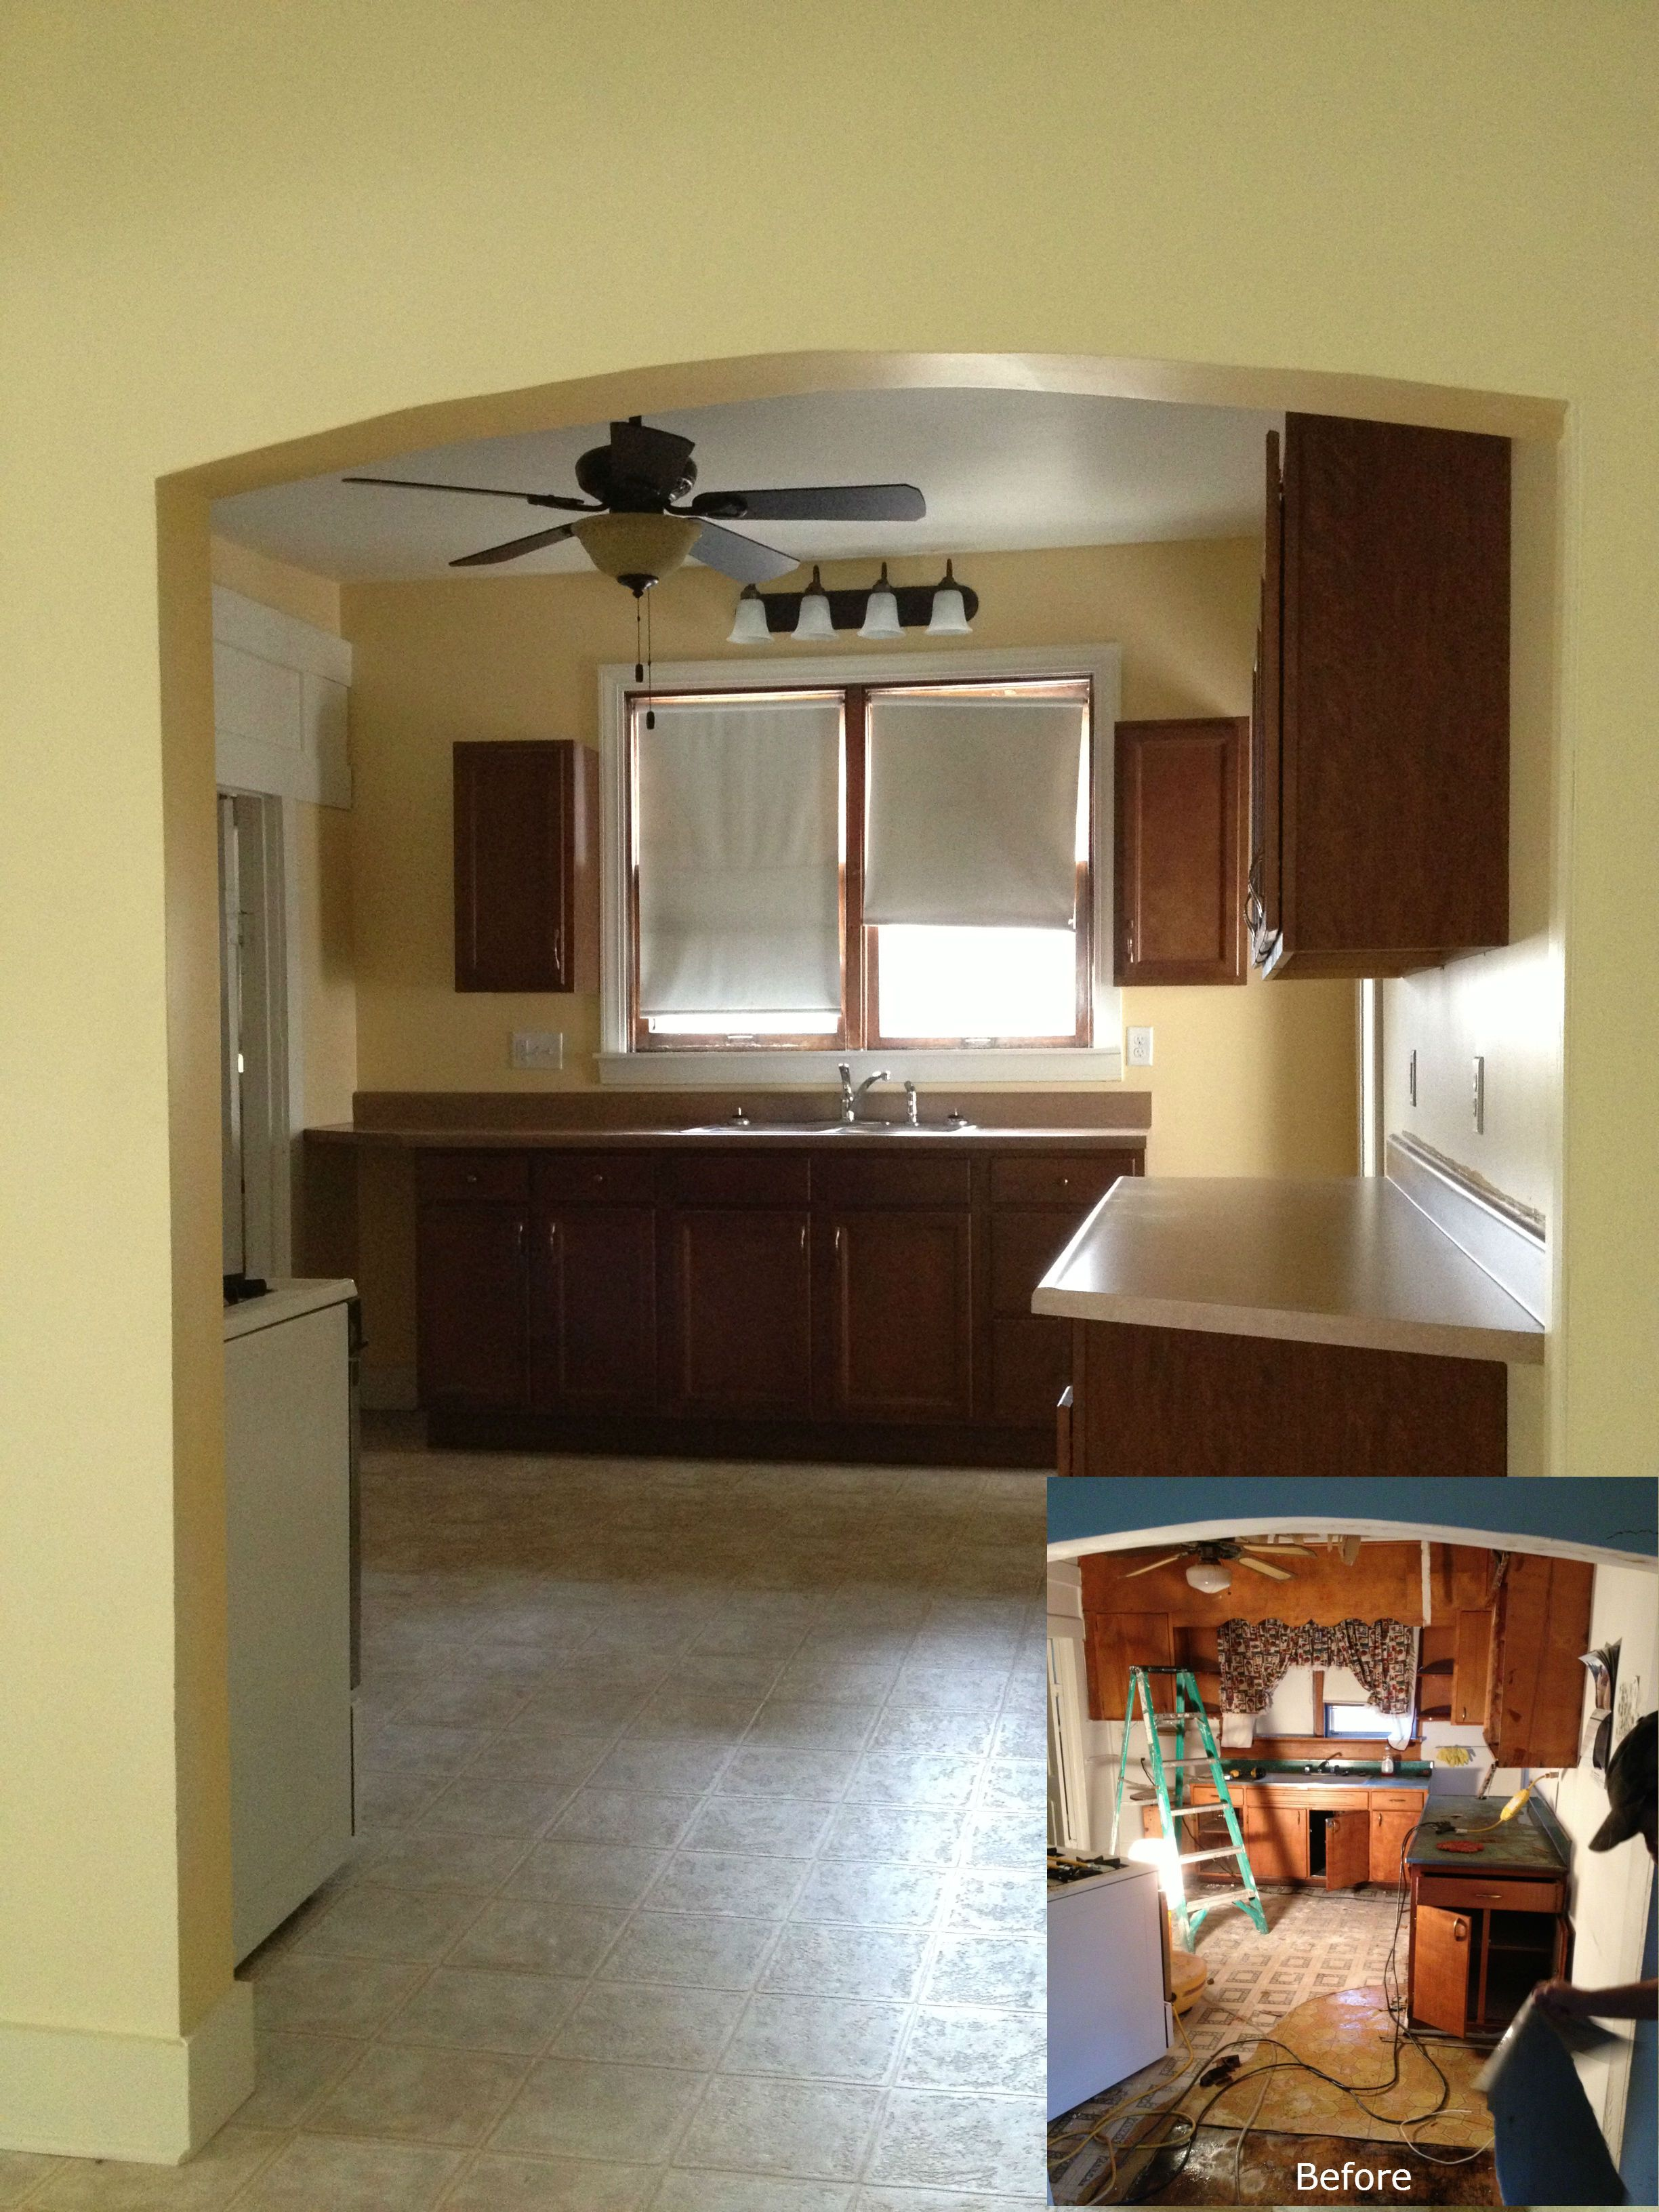 Kitchen Remodel Completed By J.J. Swartz Co.   Decatur, IL